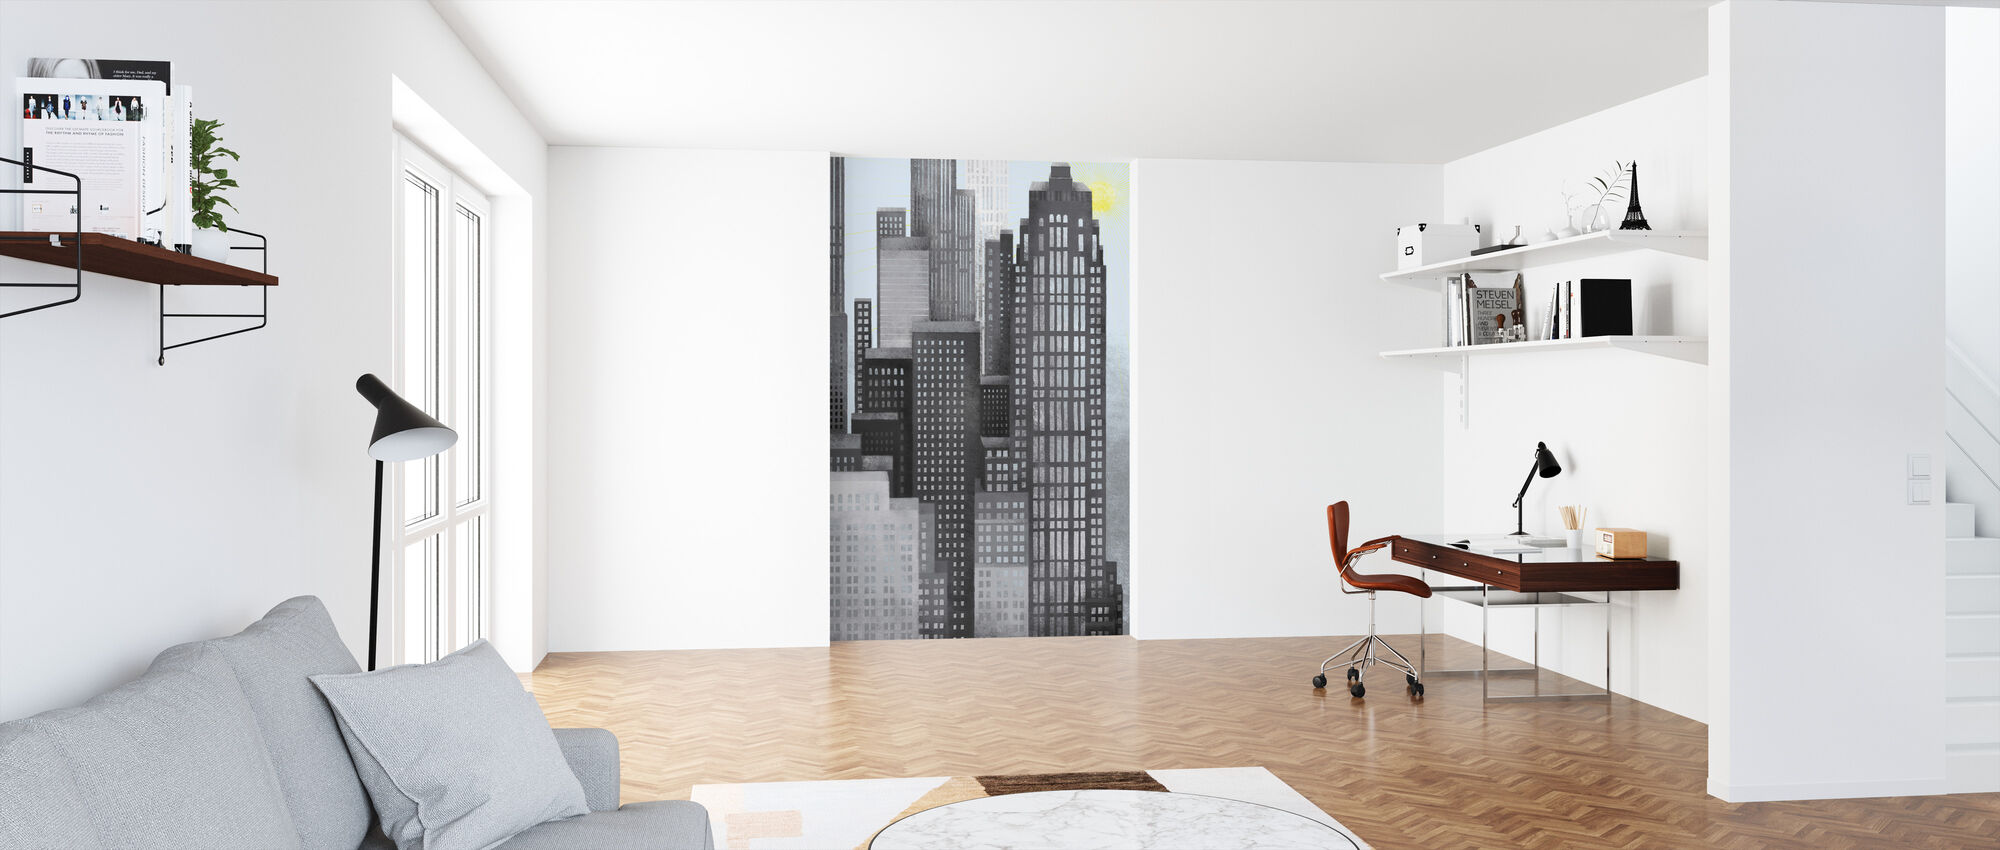 Sun and Skyscrapers - Wallpaper - Office